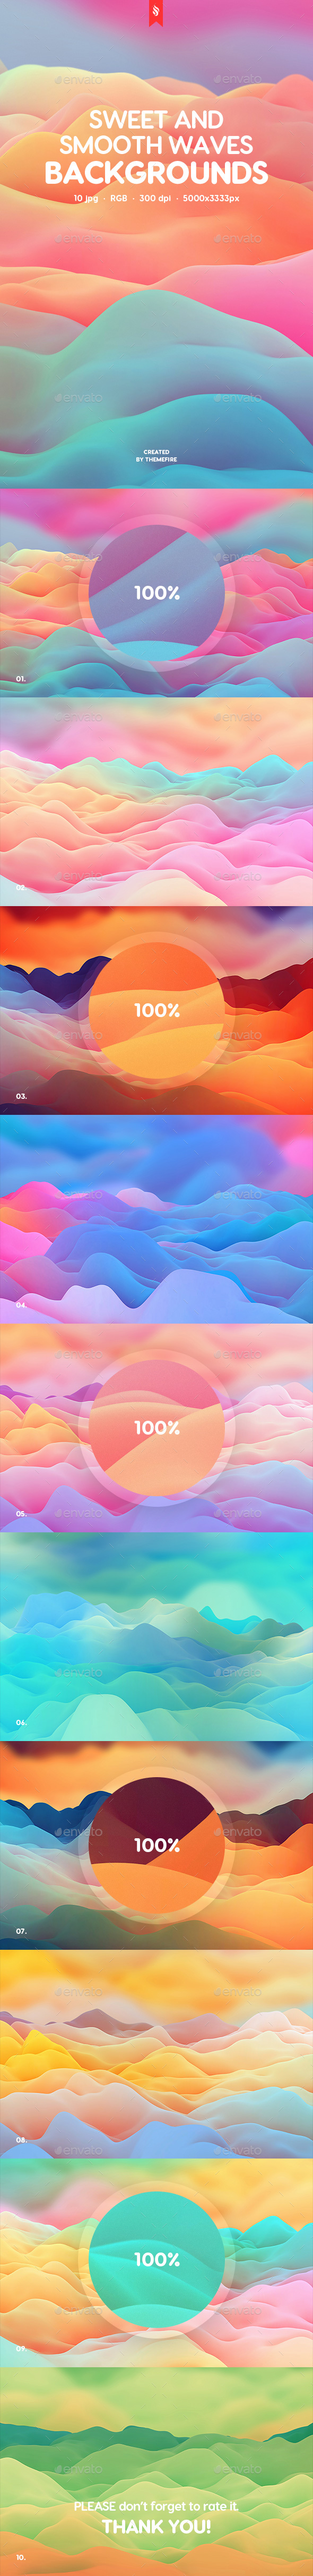 GraphicRiver Sweet Smooth Waves Backgrounds 20630107